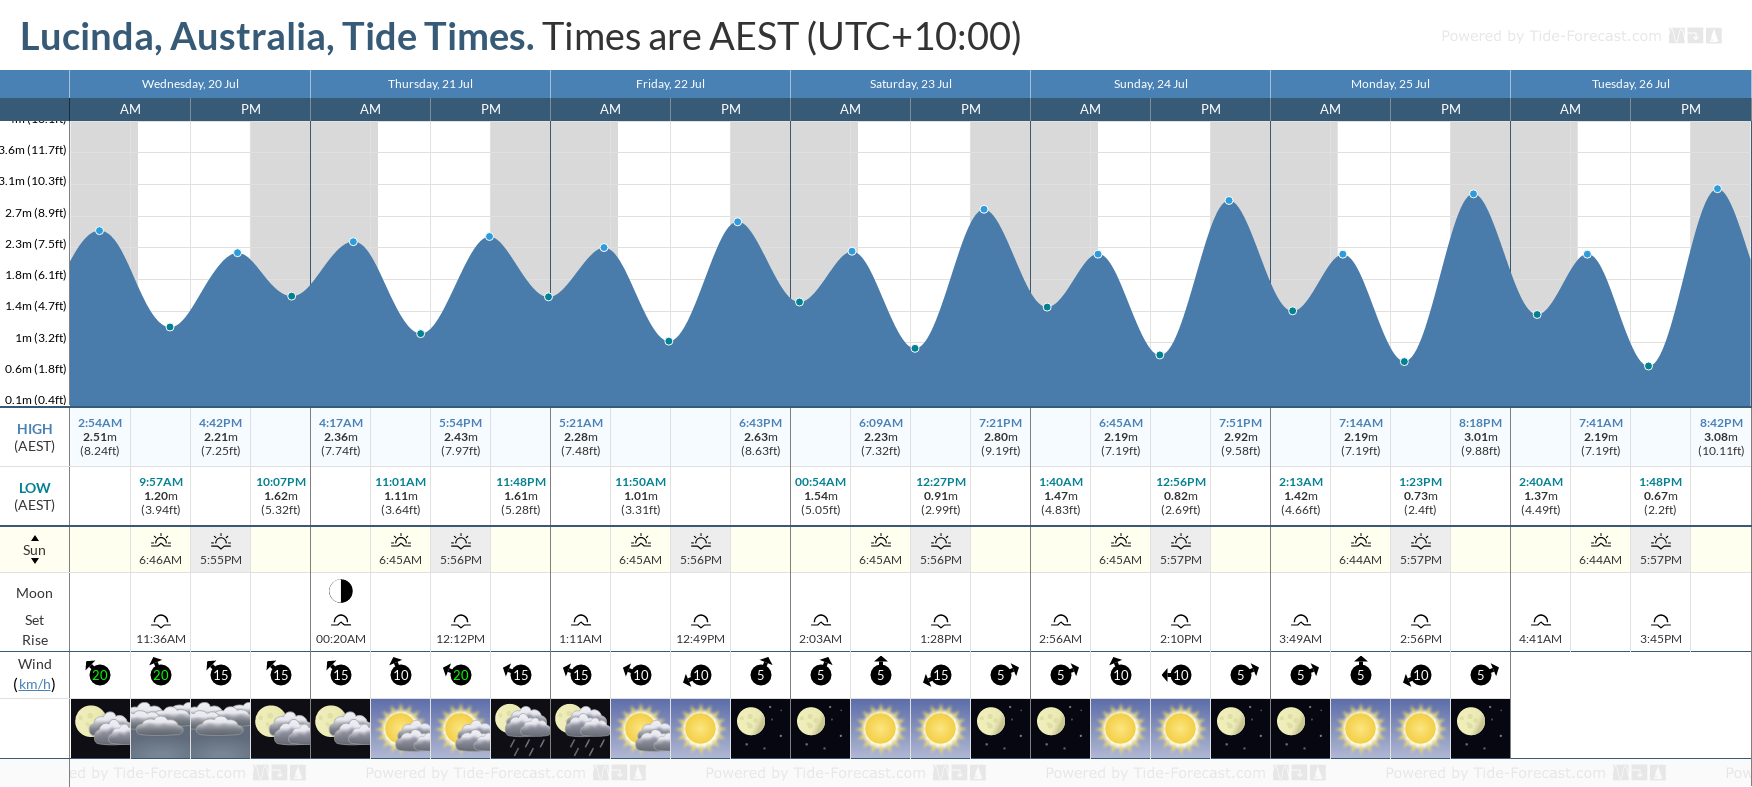 Lucinda, Australia Tide Chart including high and low tide tide times for the next 7 days